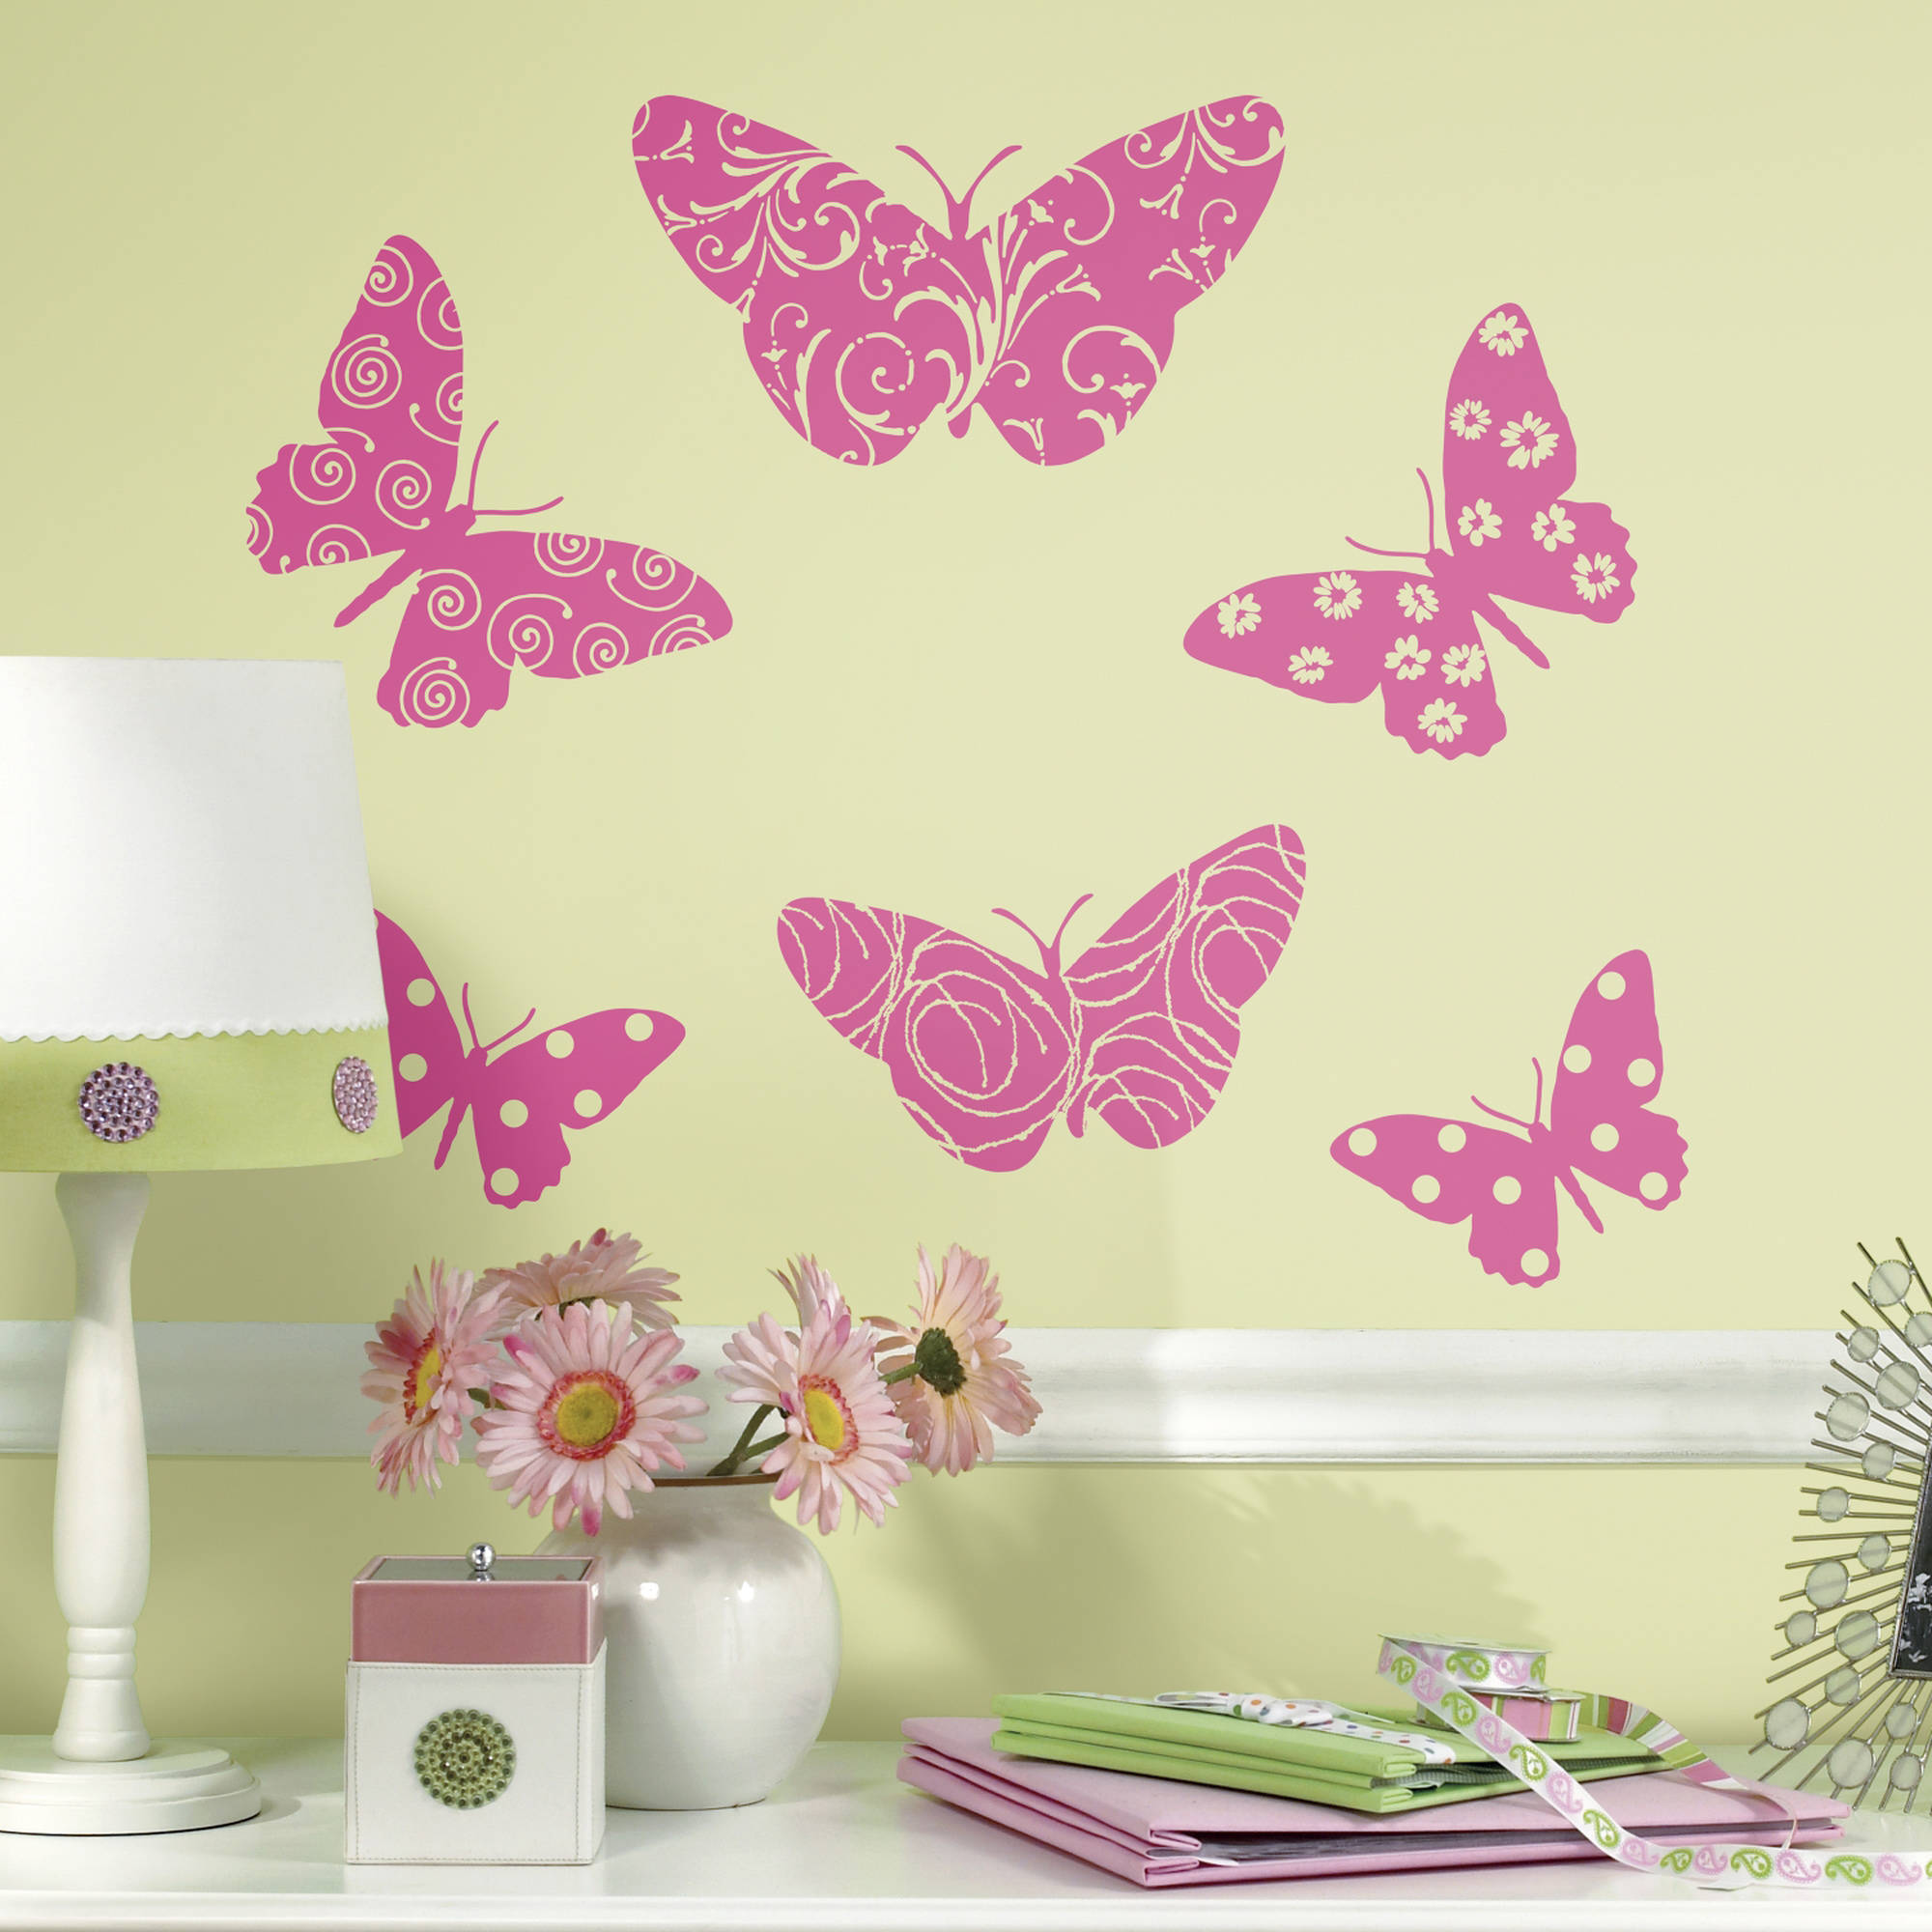 Flocked Butterfly  Peel and Stick Giant Wall Decals